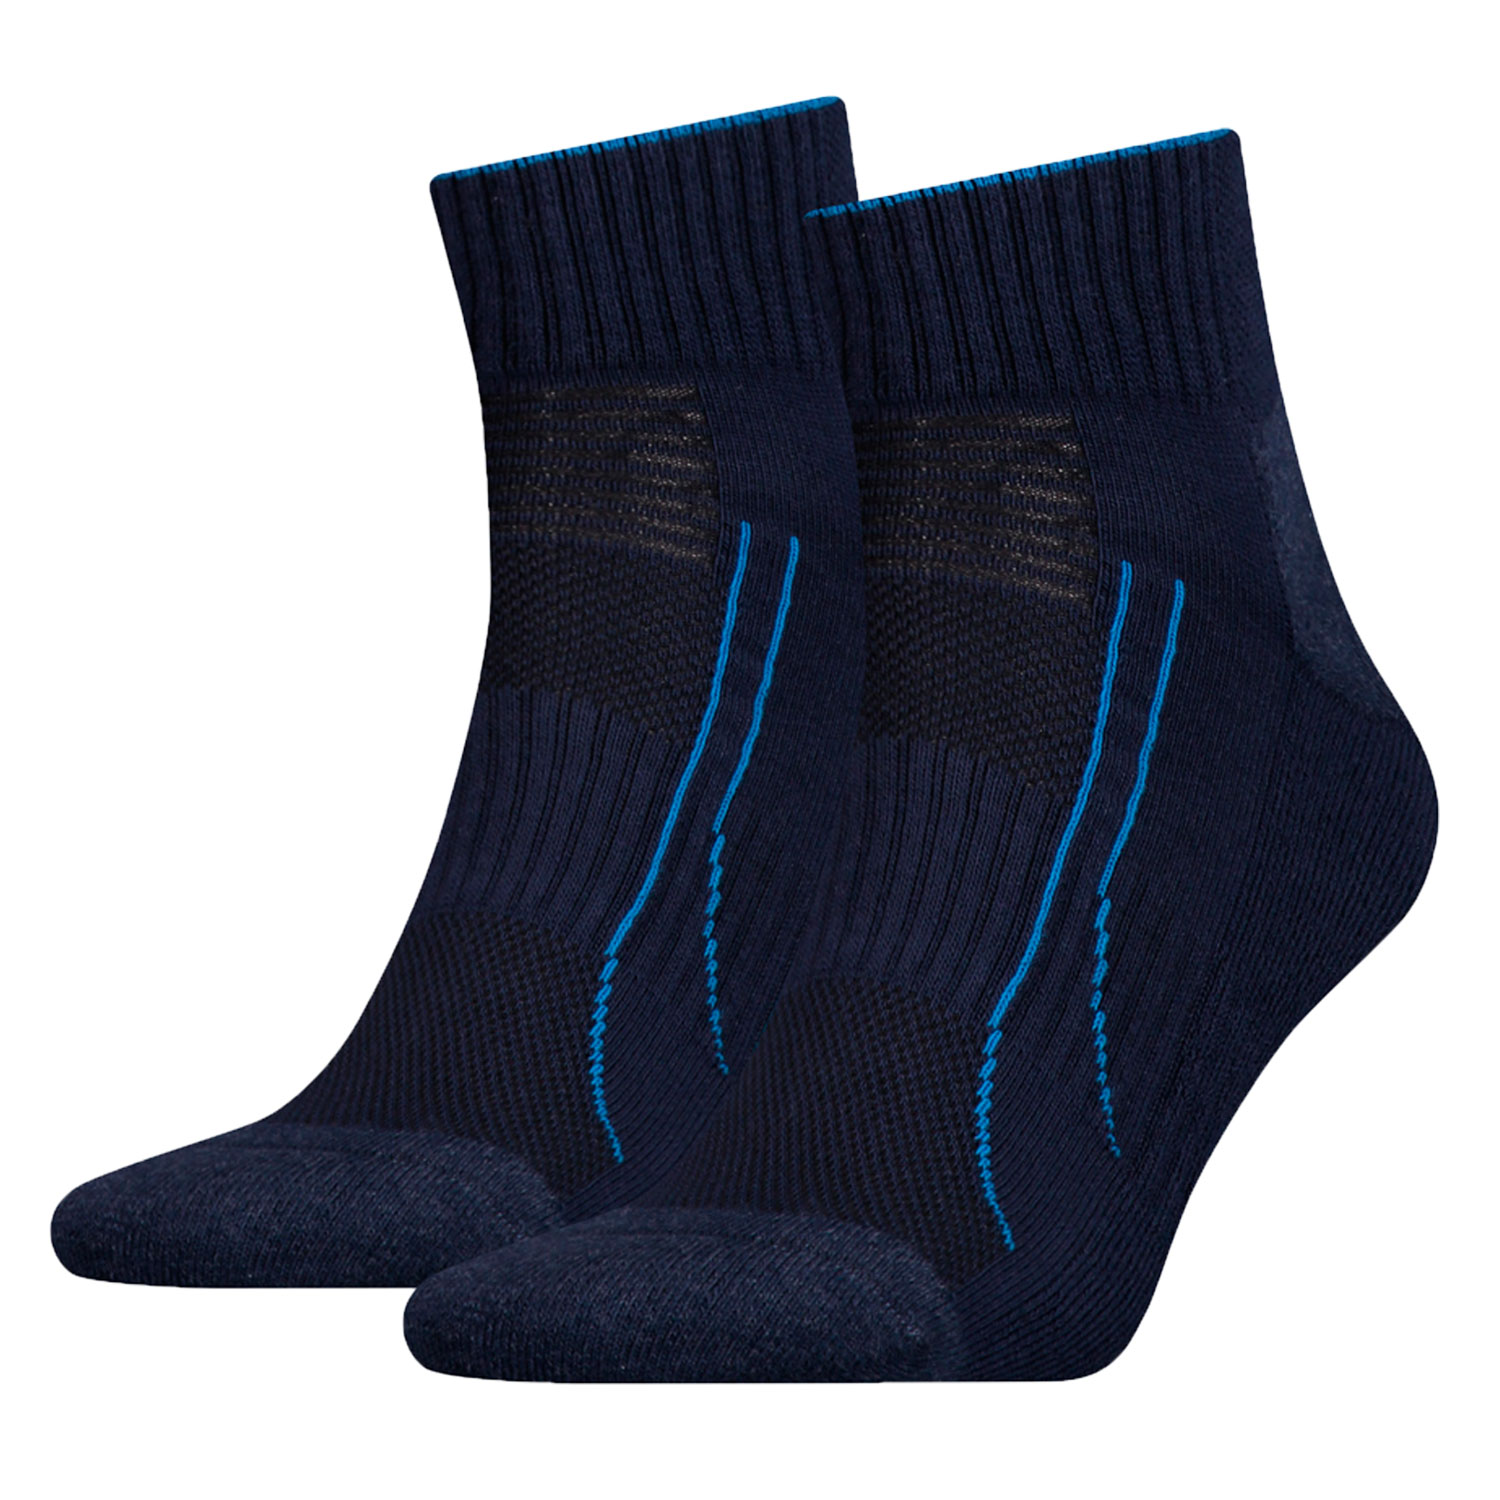 Puma Performance Train Quarter 8 Paar Kurzsocken Sportsocken Allround Sports – Bild 3